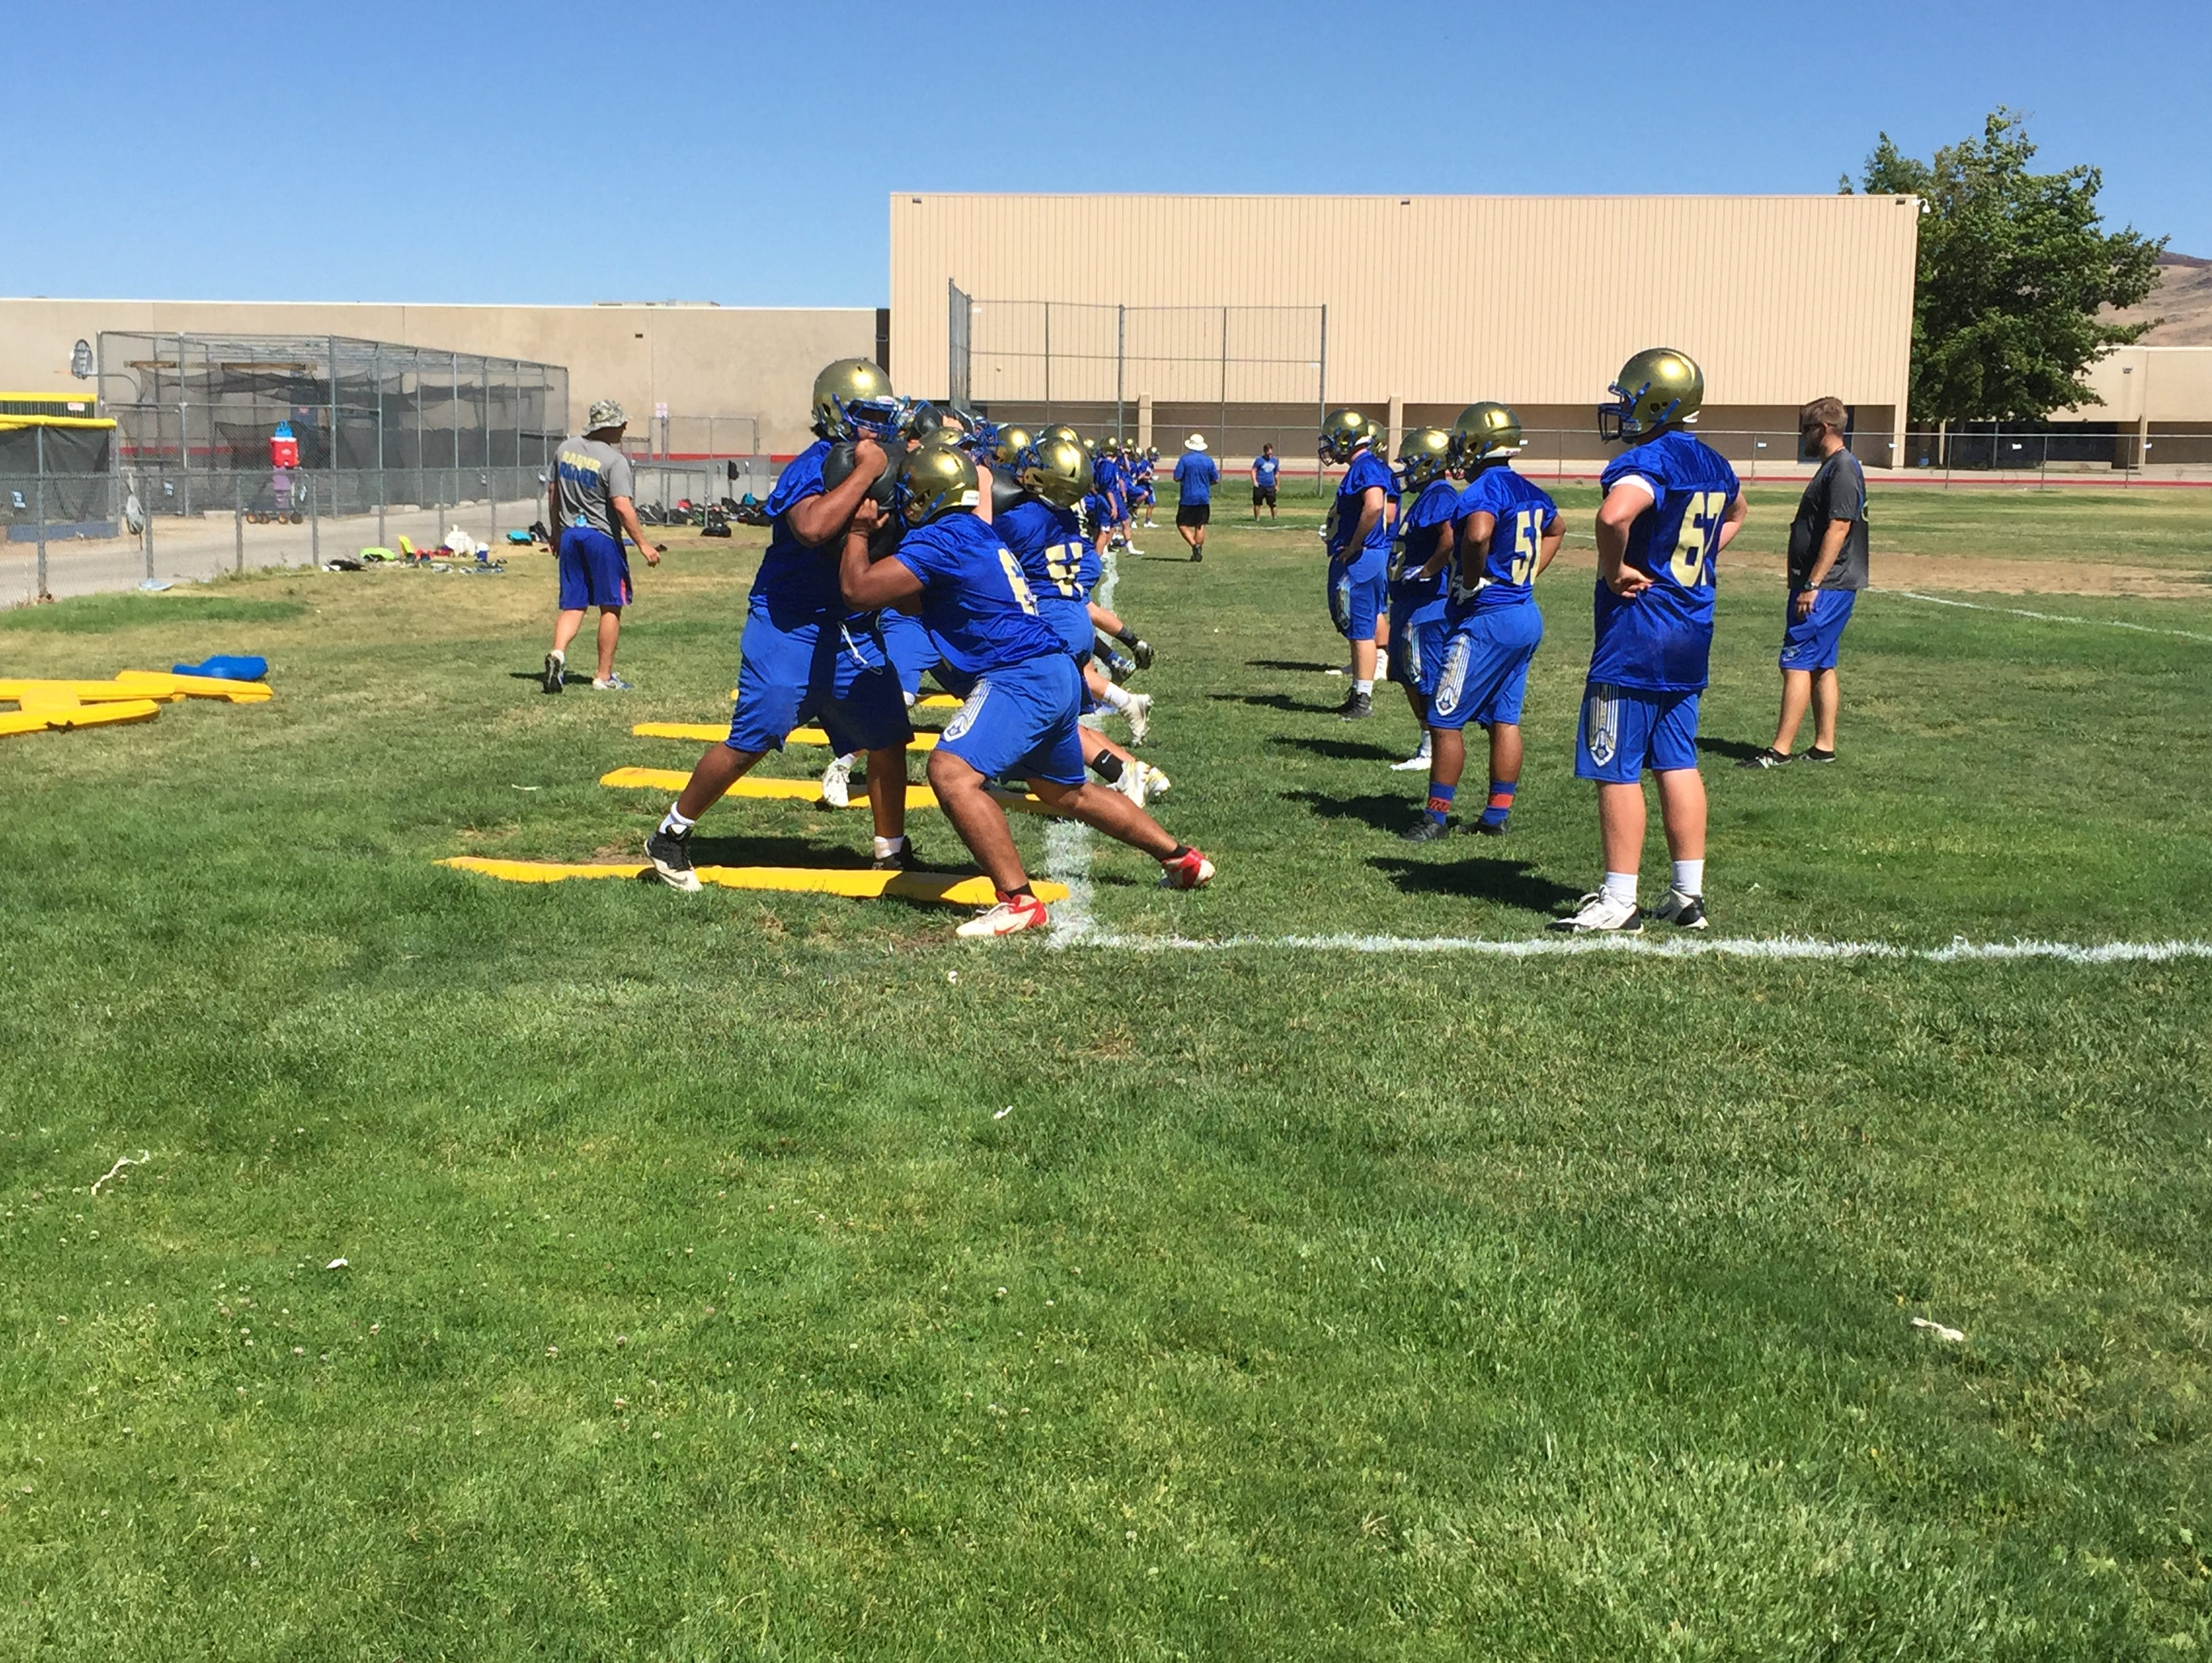 Reed football players practice at the school earlier this month.